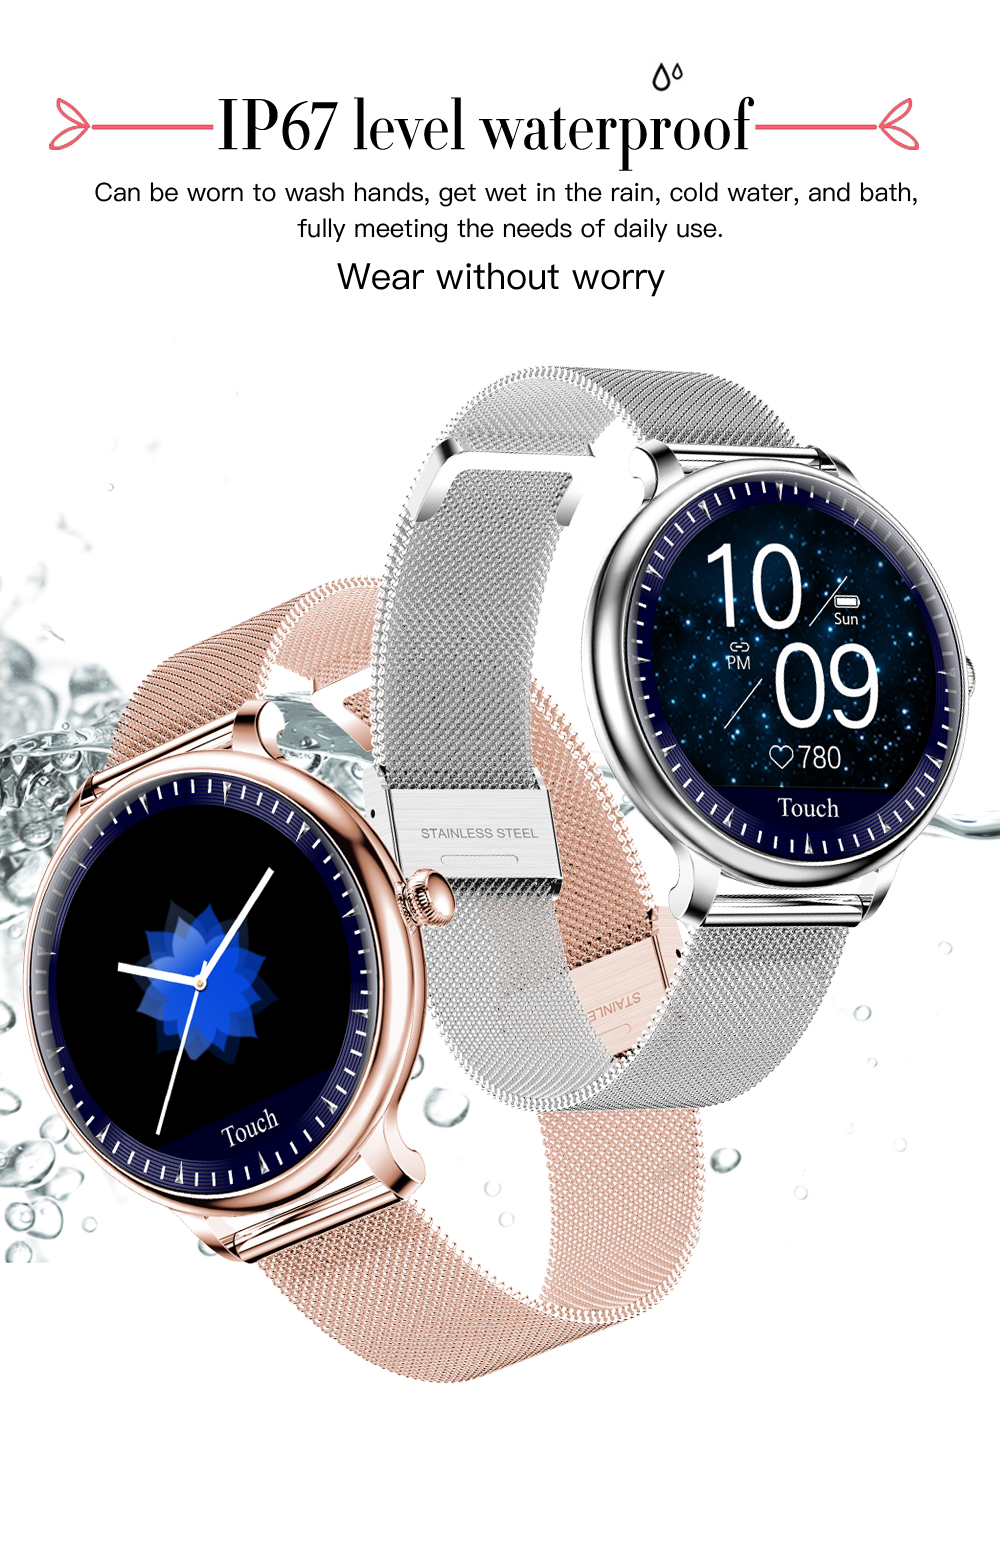 LEMFO NY12 Smart Watch Women Heart Rate Blood Pressure Physiological Monitor IP67 Waterproof 2.5D LCD Screen SmartWatch